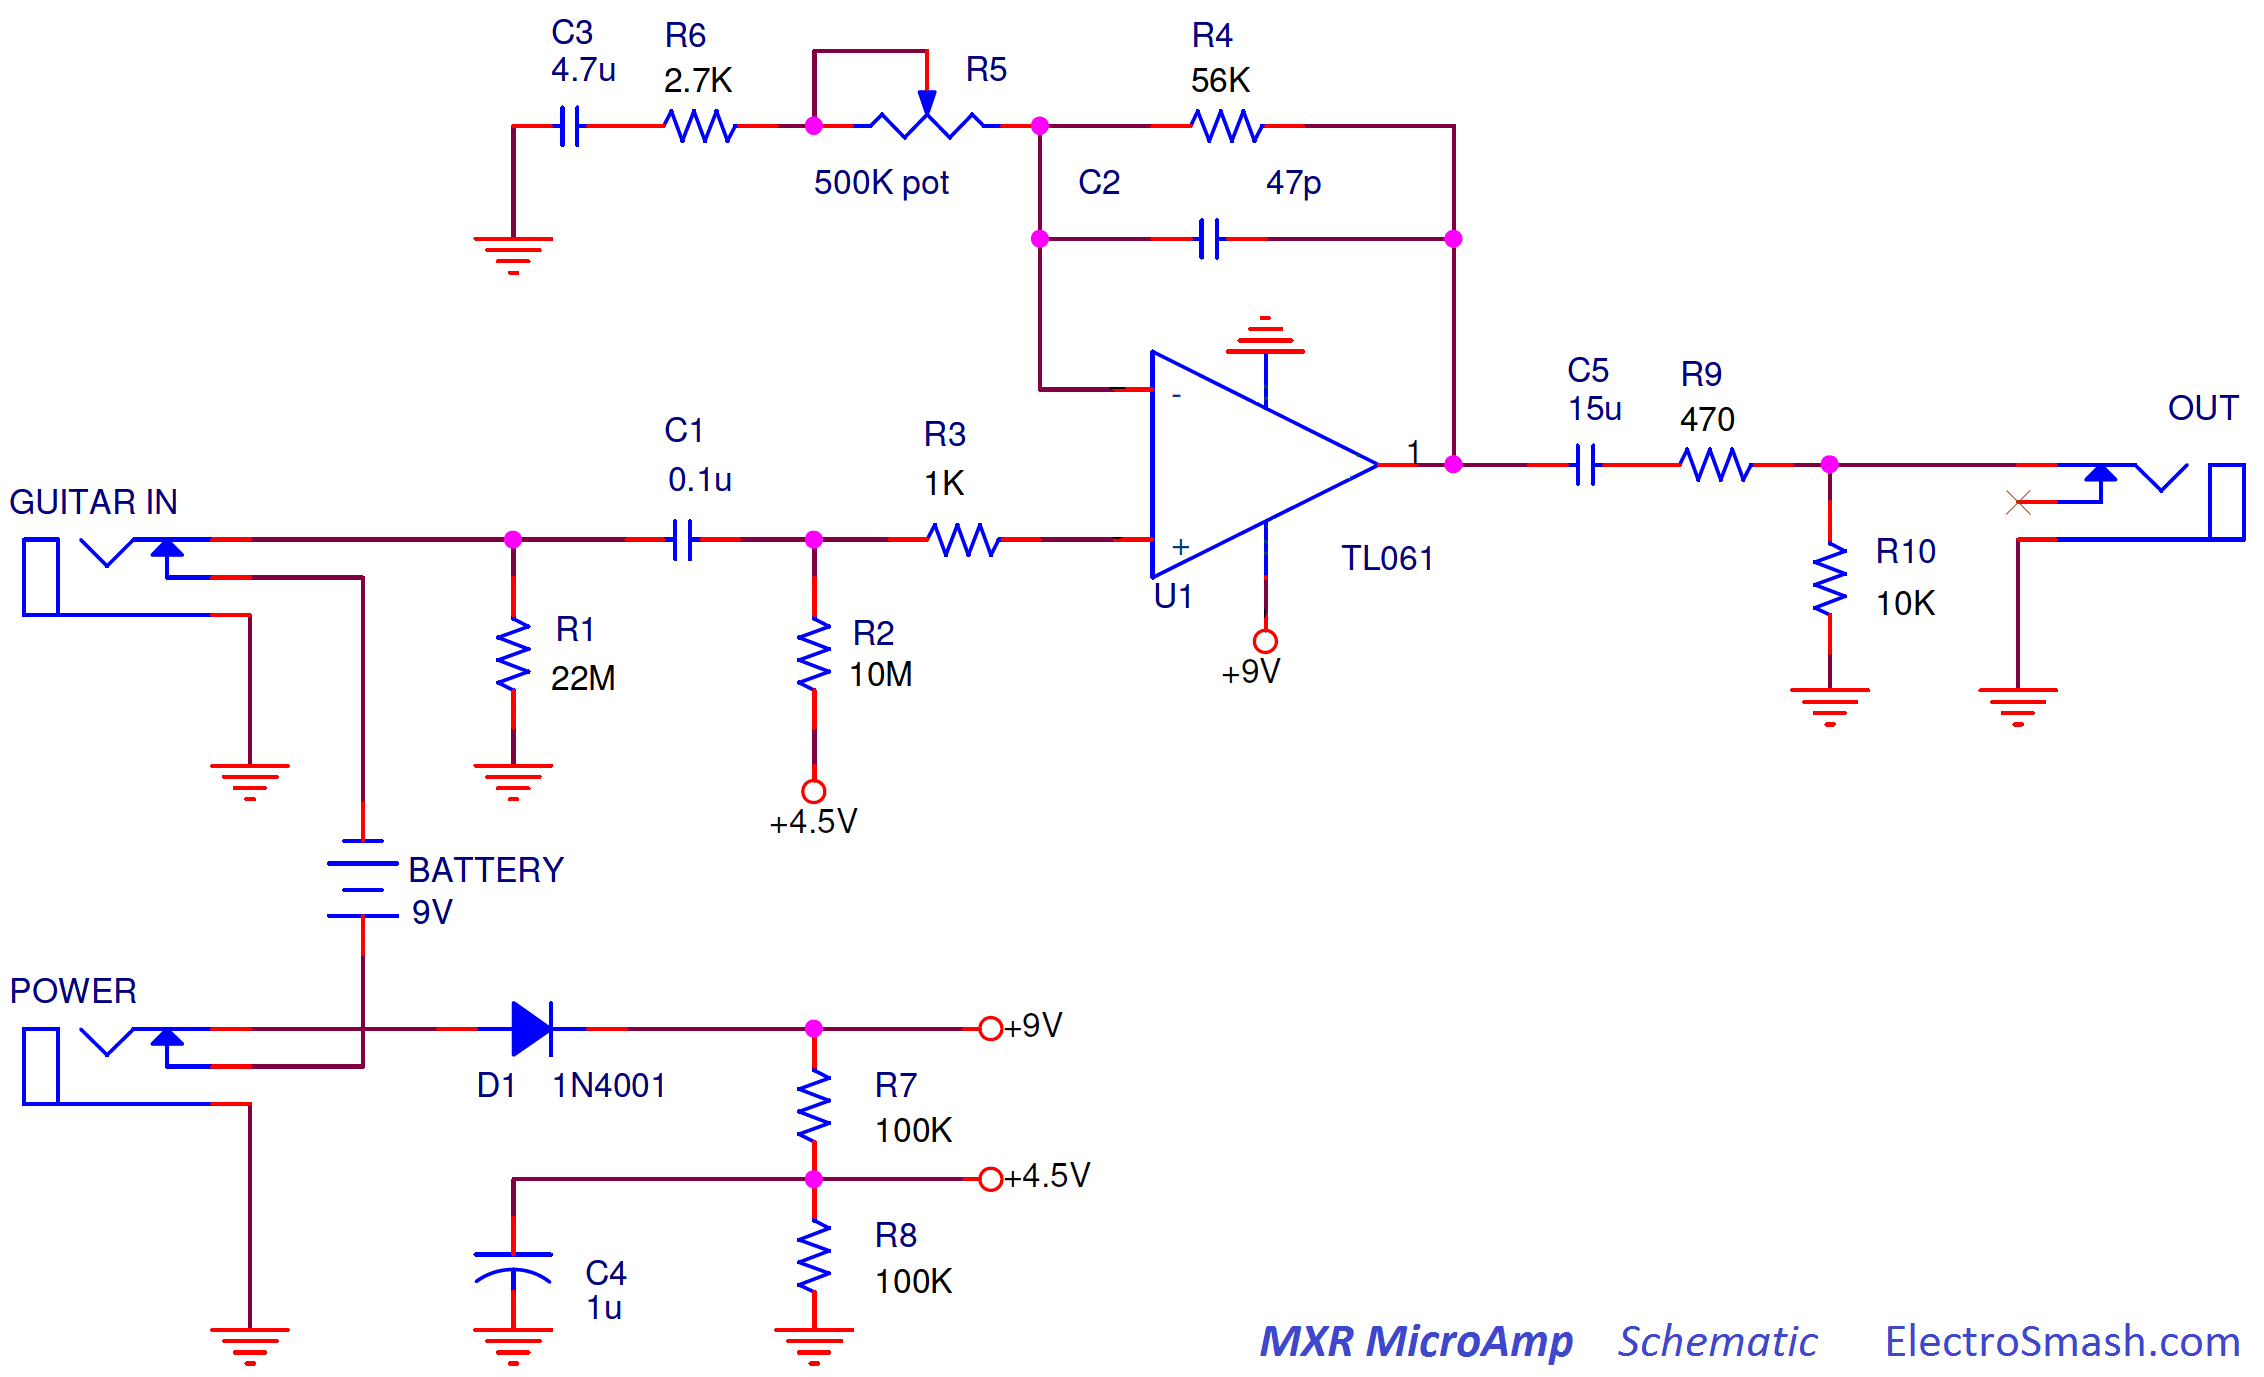 Electrosmash Mxr Microamp Analysis Op Amp Is The Buffer In This Power Supply Circuit Required Micro Can Be Divided Into Two Blocks Stage And Amplifier